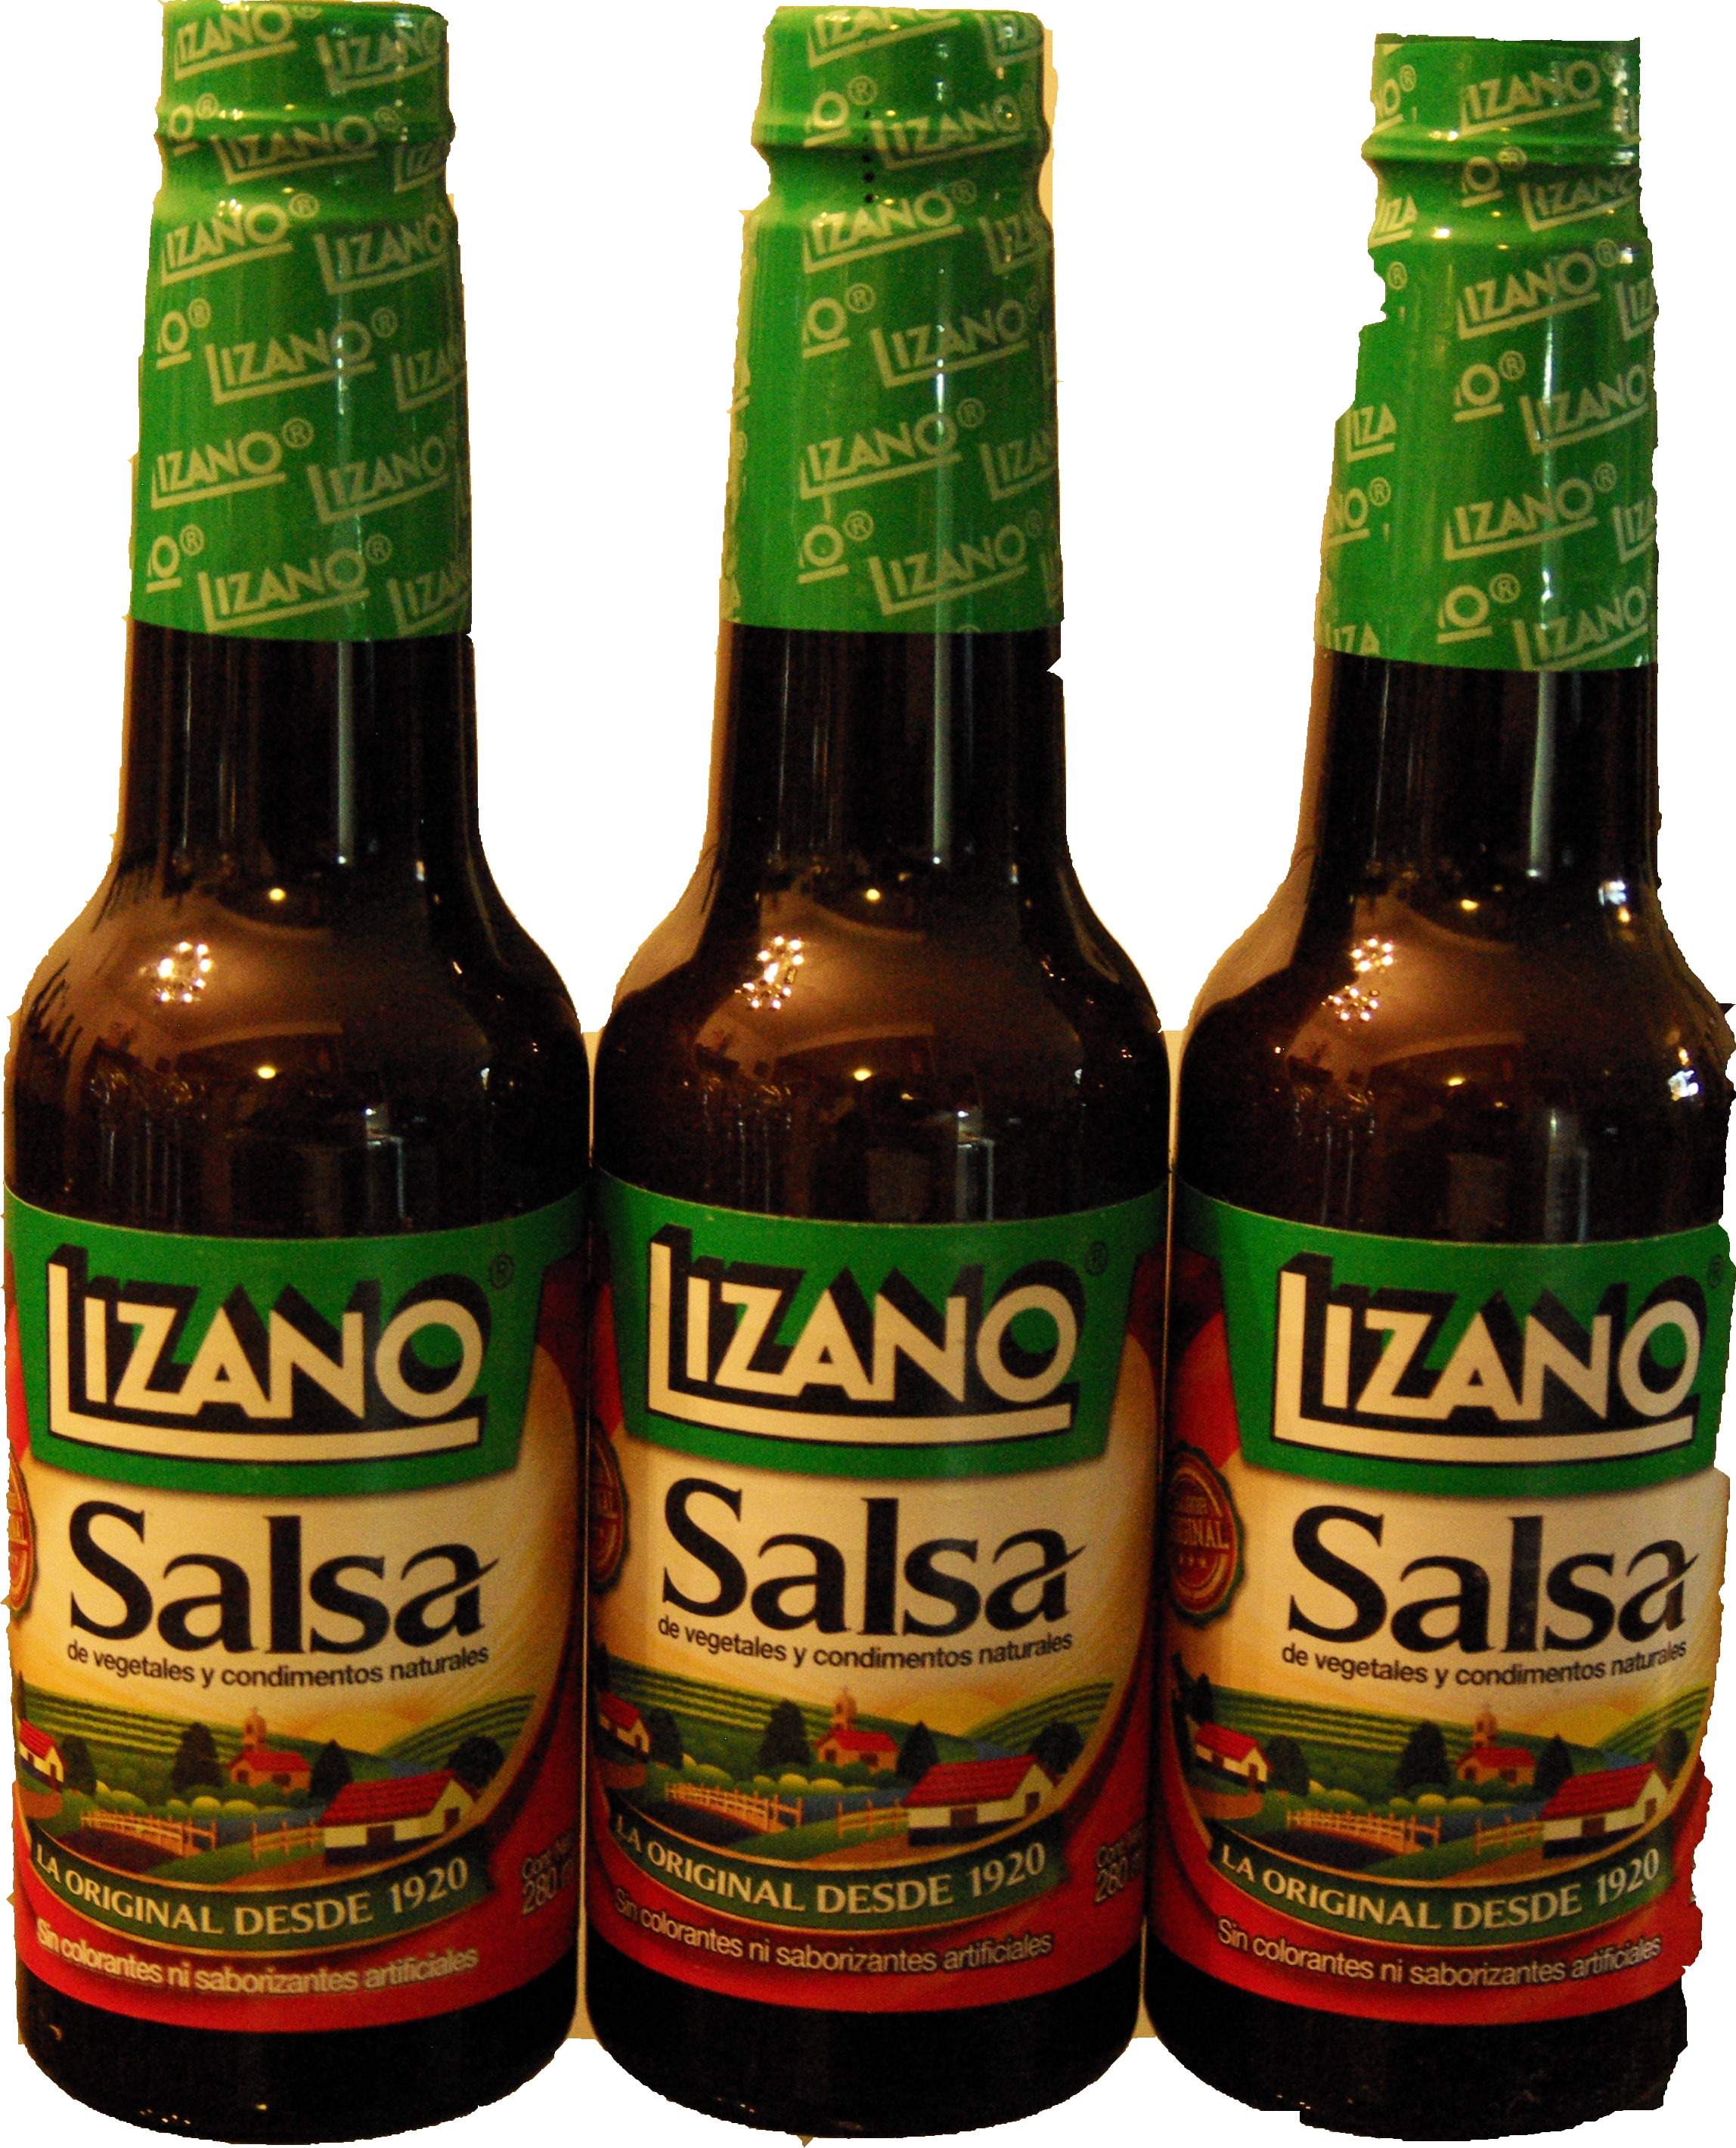 Lizano 700 mL (24 Oz) - 3 pack